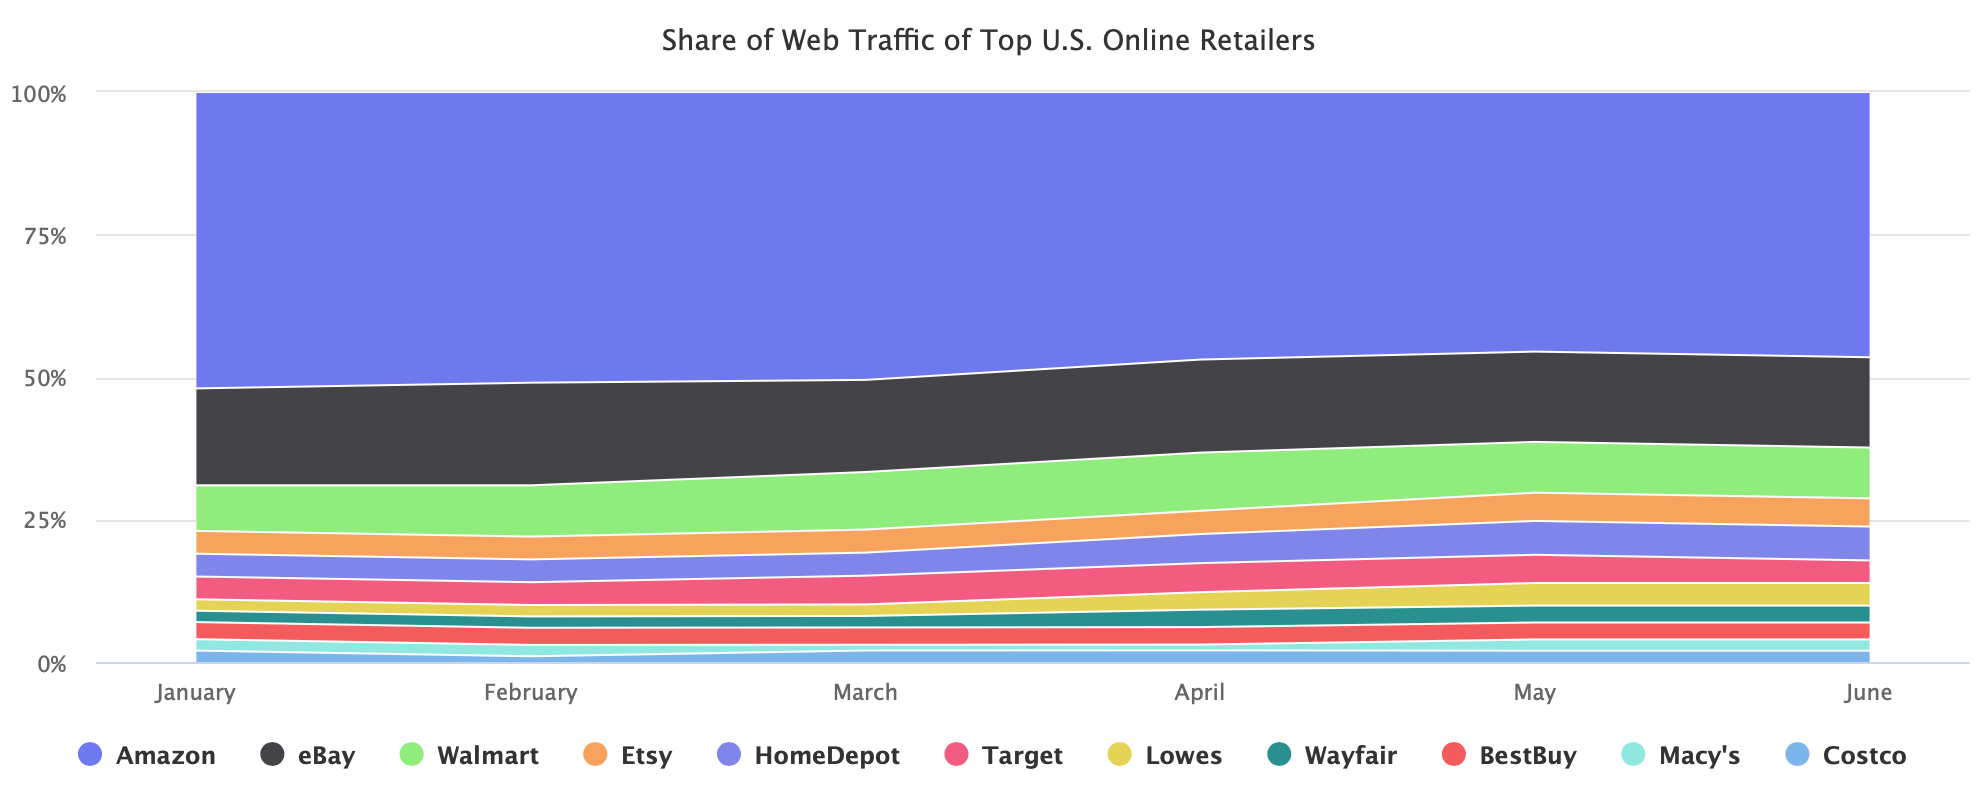 Share of Web Traffic of Top U.S. Online Retailers